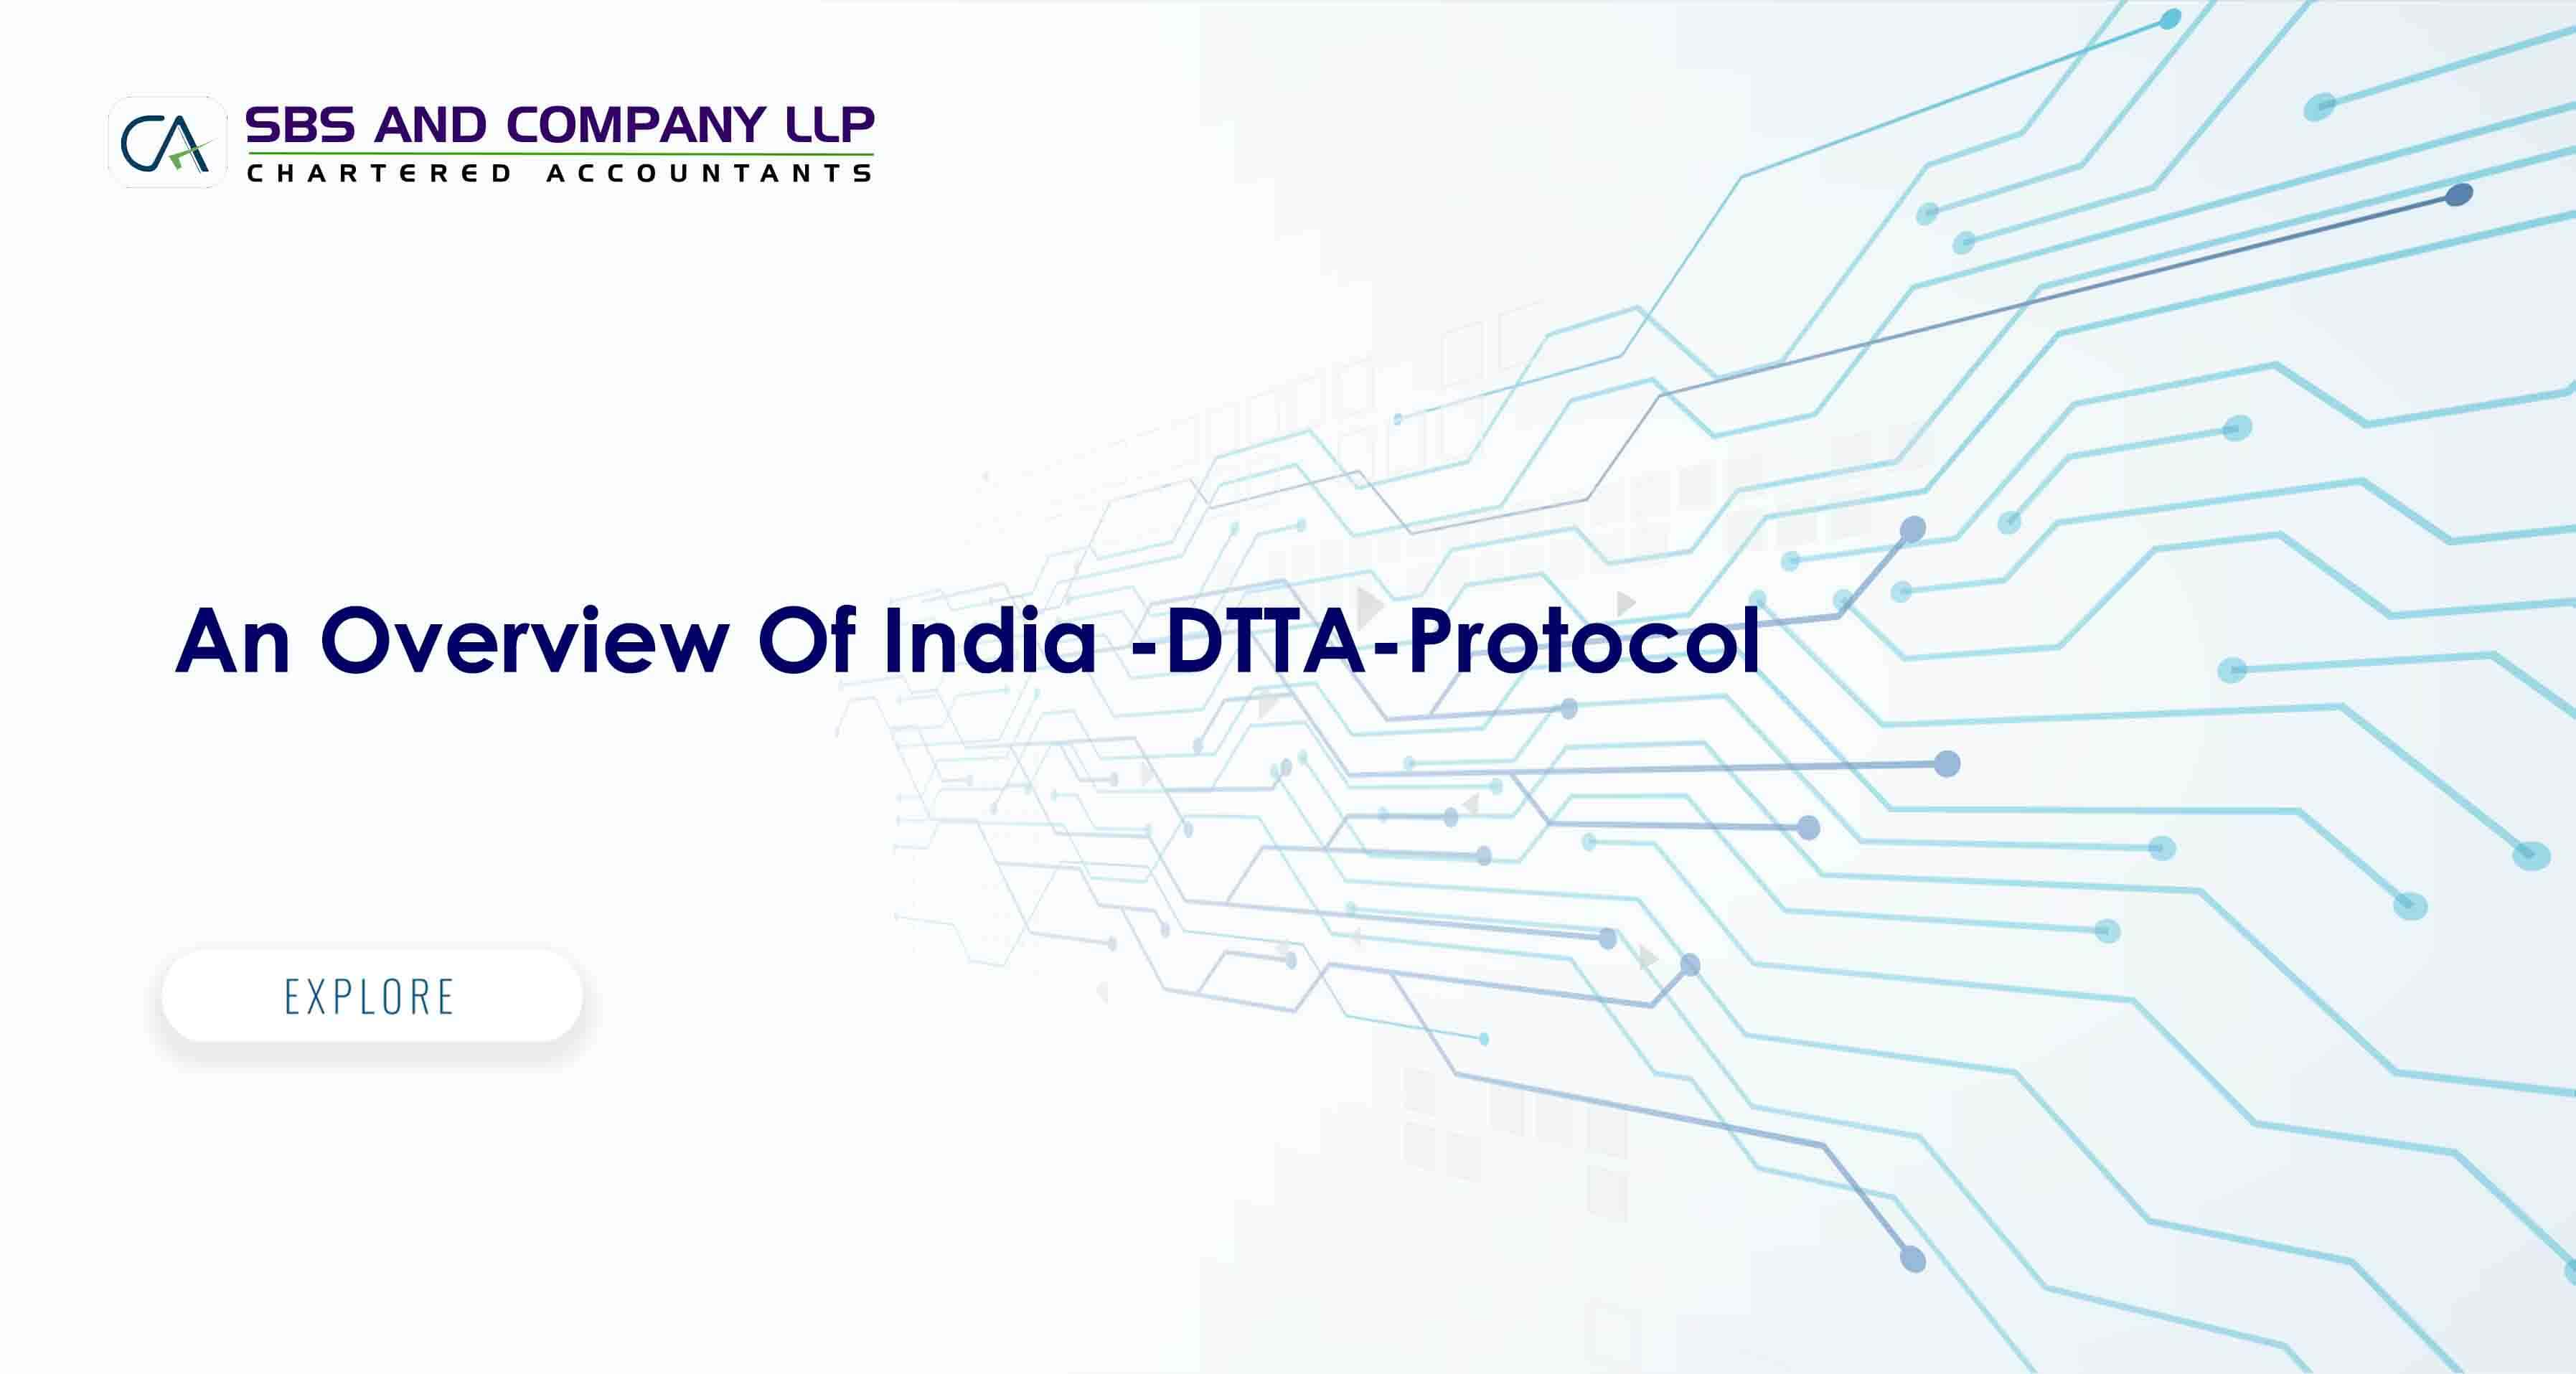 An Overview Of India - DTTA - Protocol